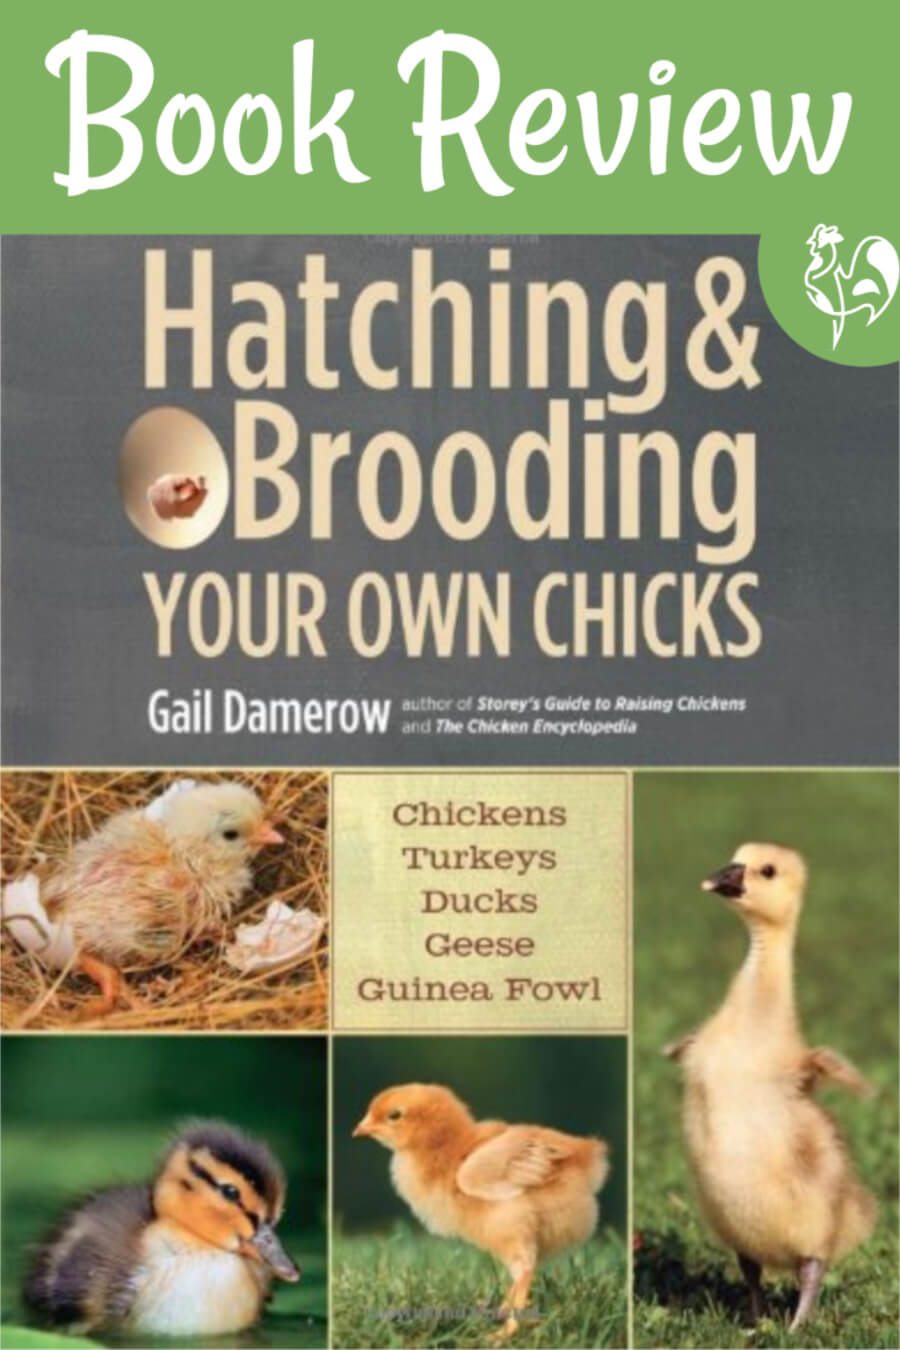 Front cover of Gail Damerow, 'Brooding your own chicks'.